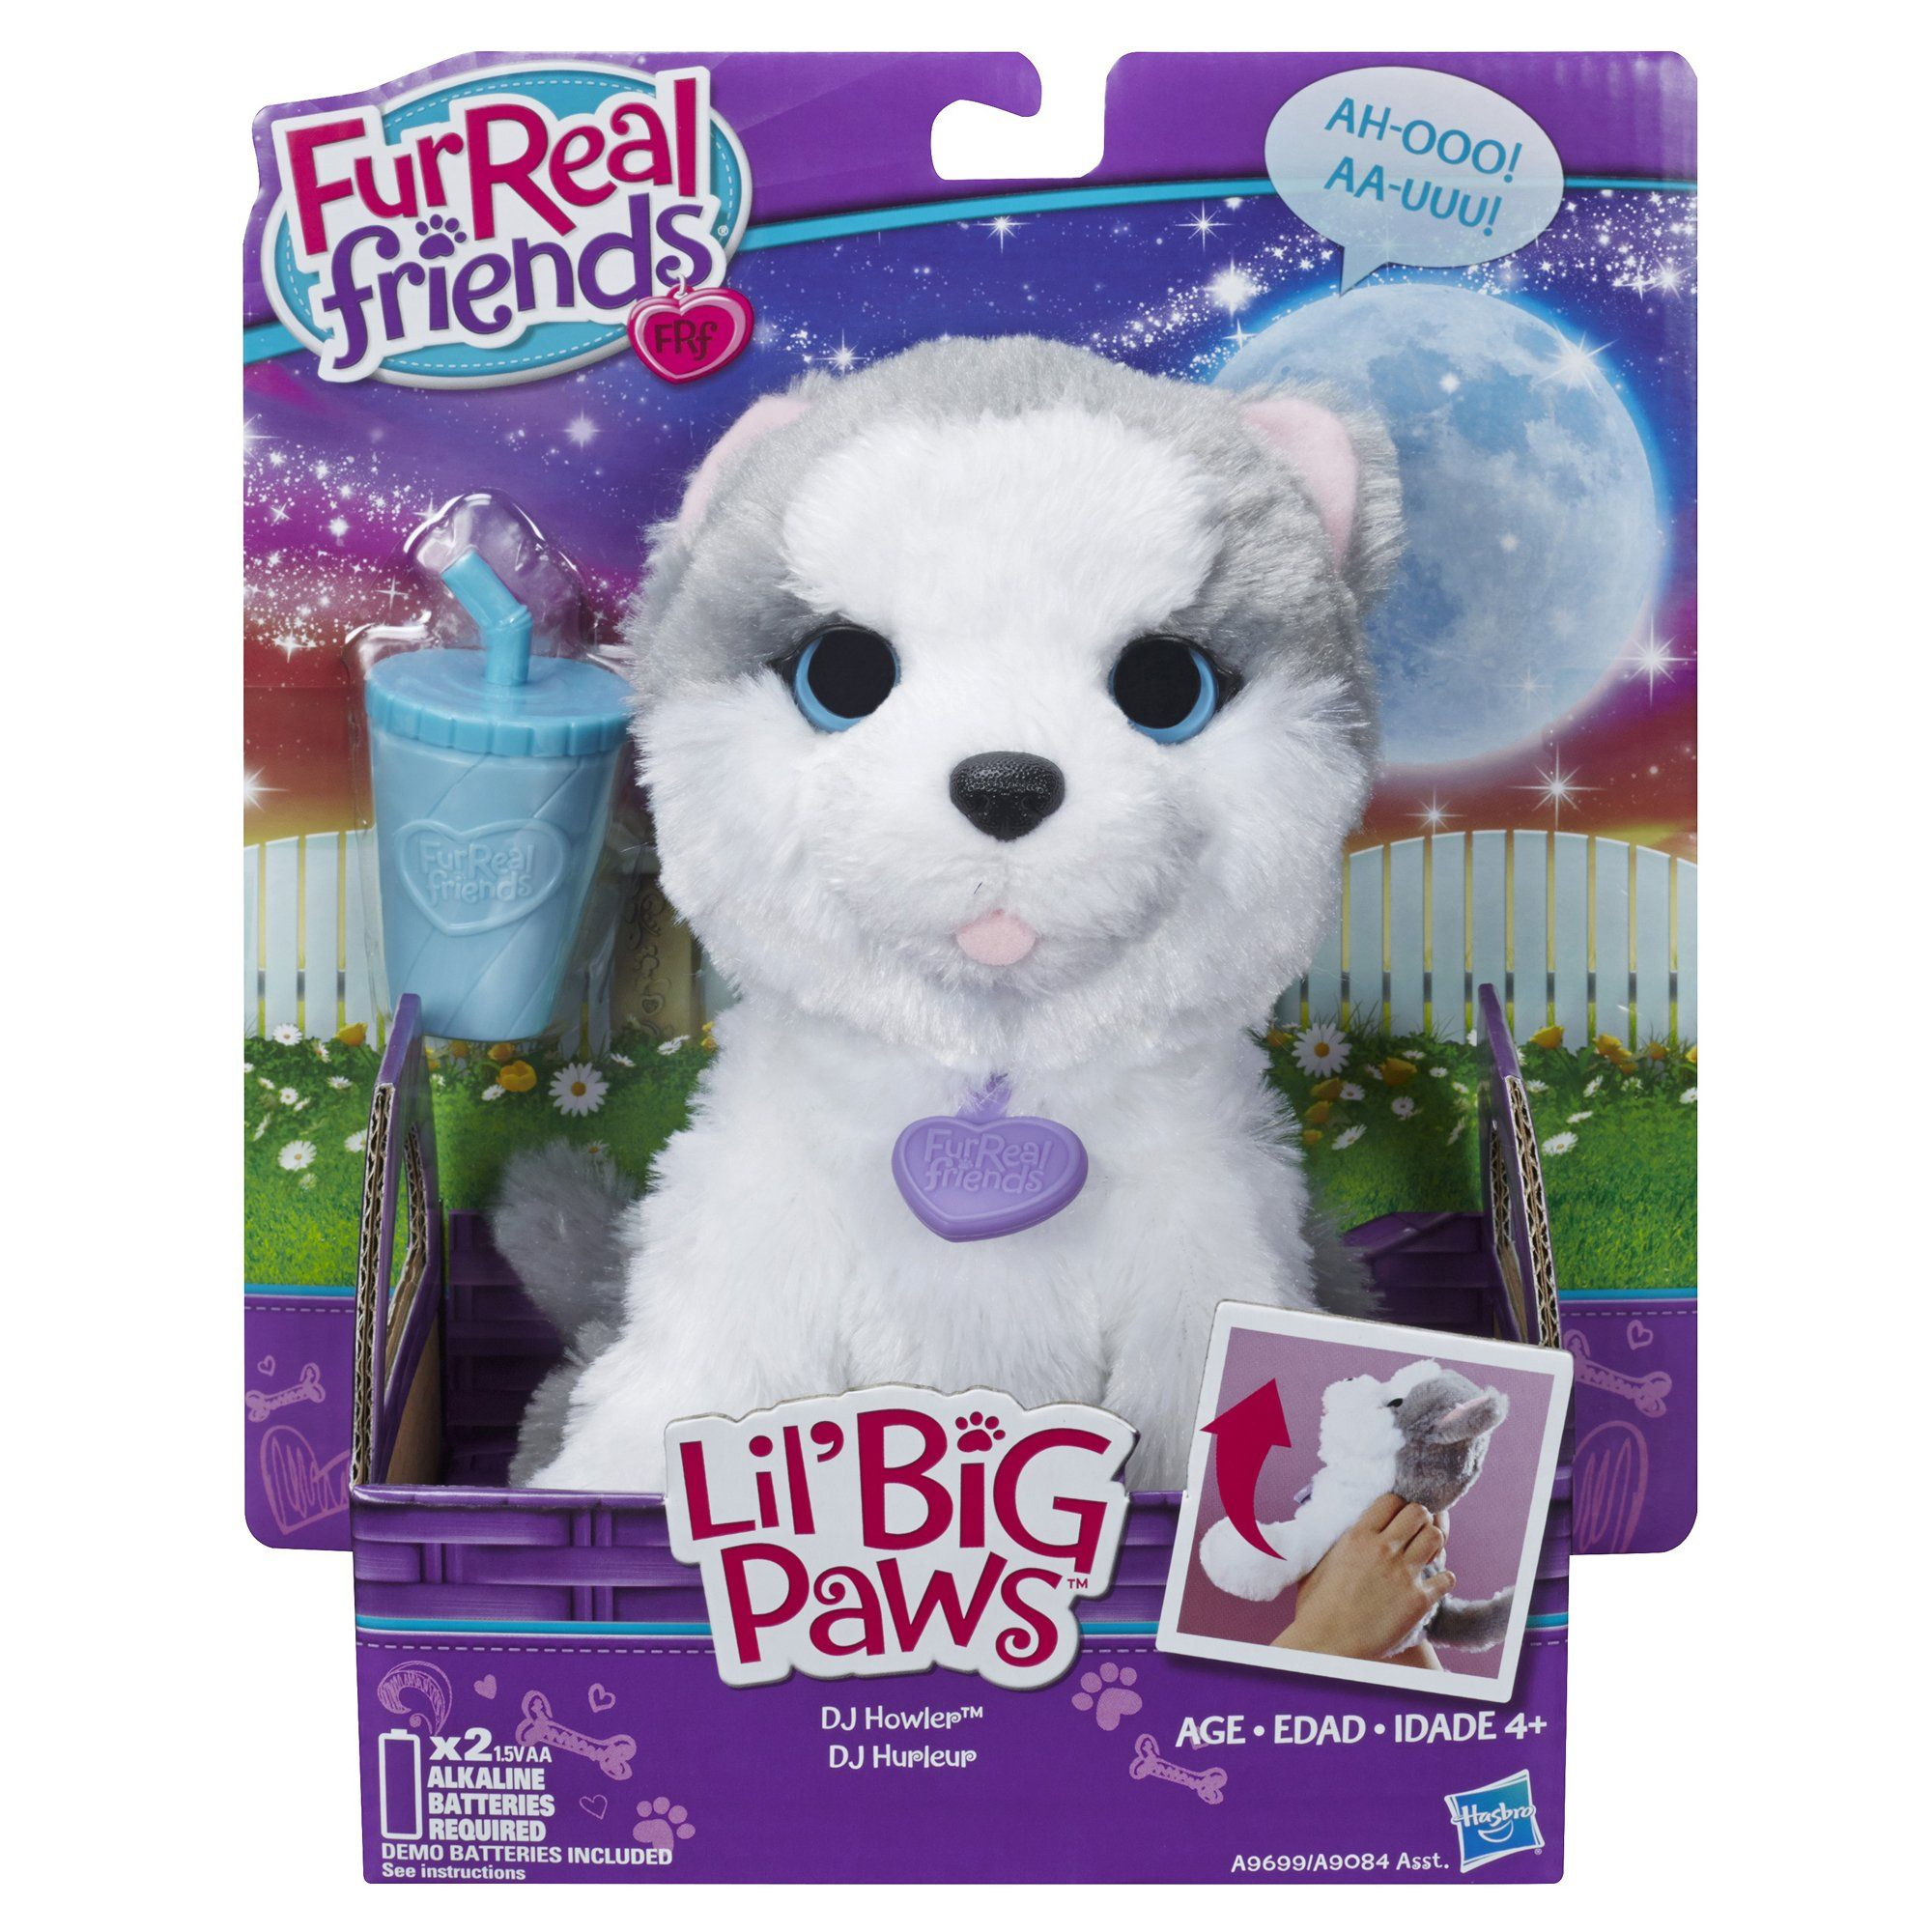 Amazon Com Furreal Friends Li L Big Paws Dj Howler Pet Toys Games Fur Real Friends Baby Girl Toys Baby Doll Accessories